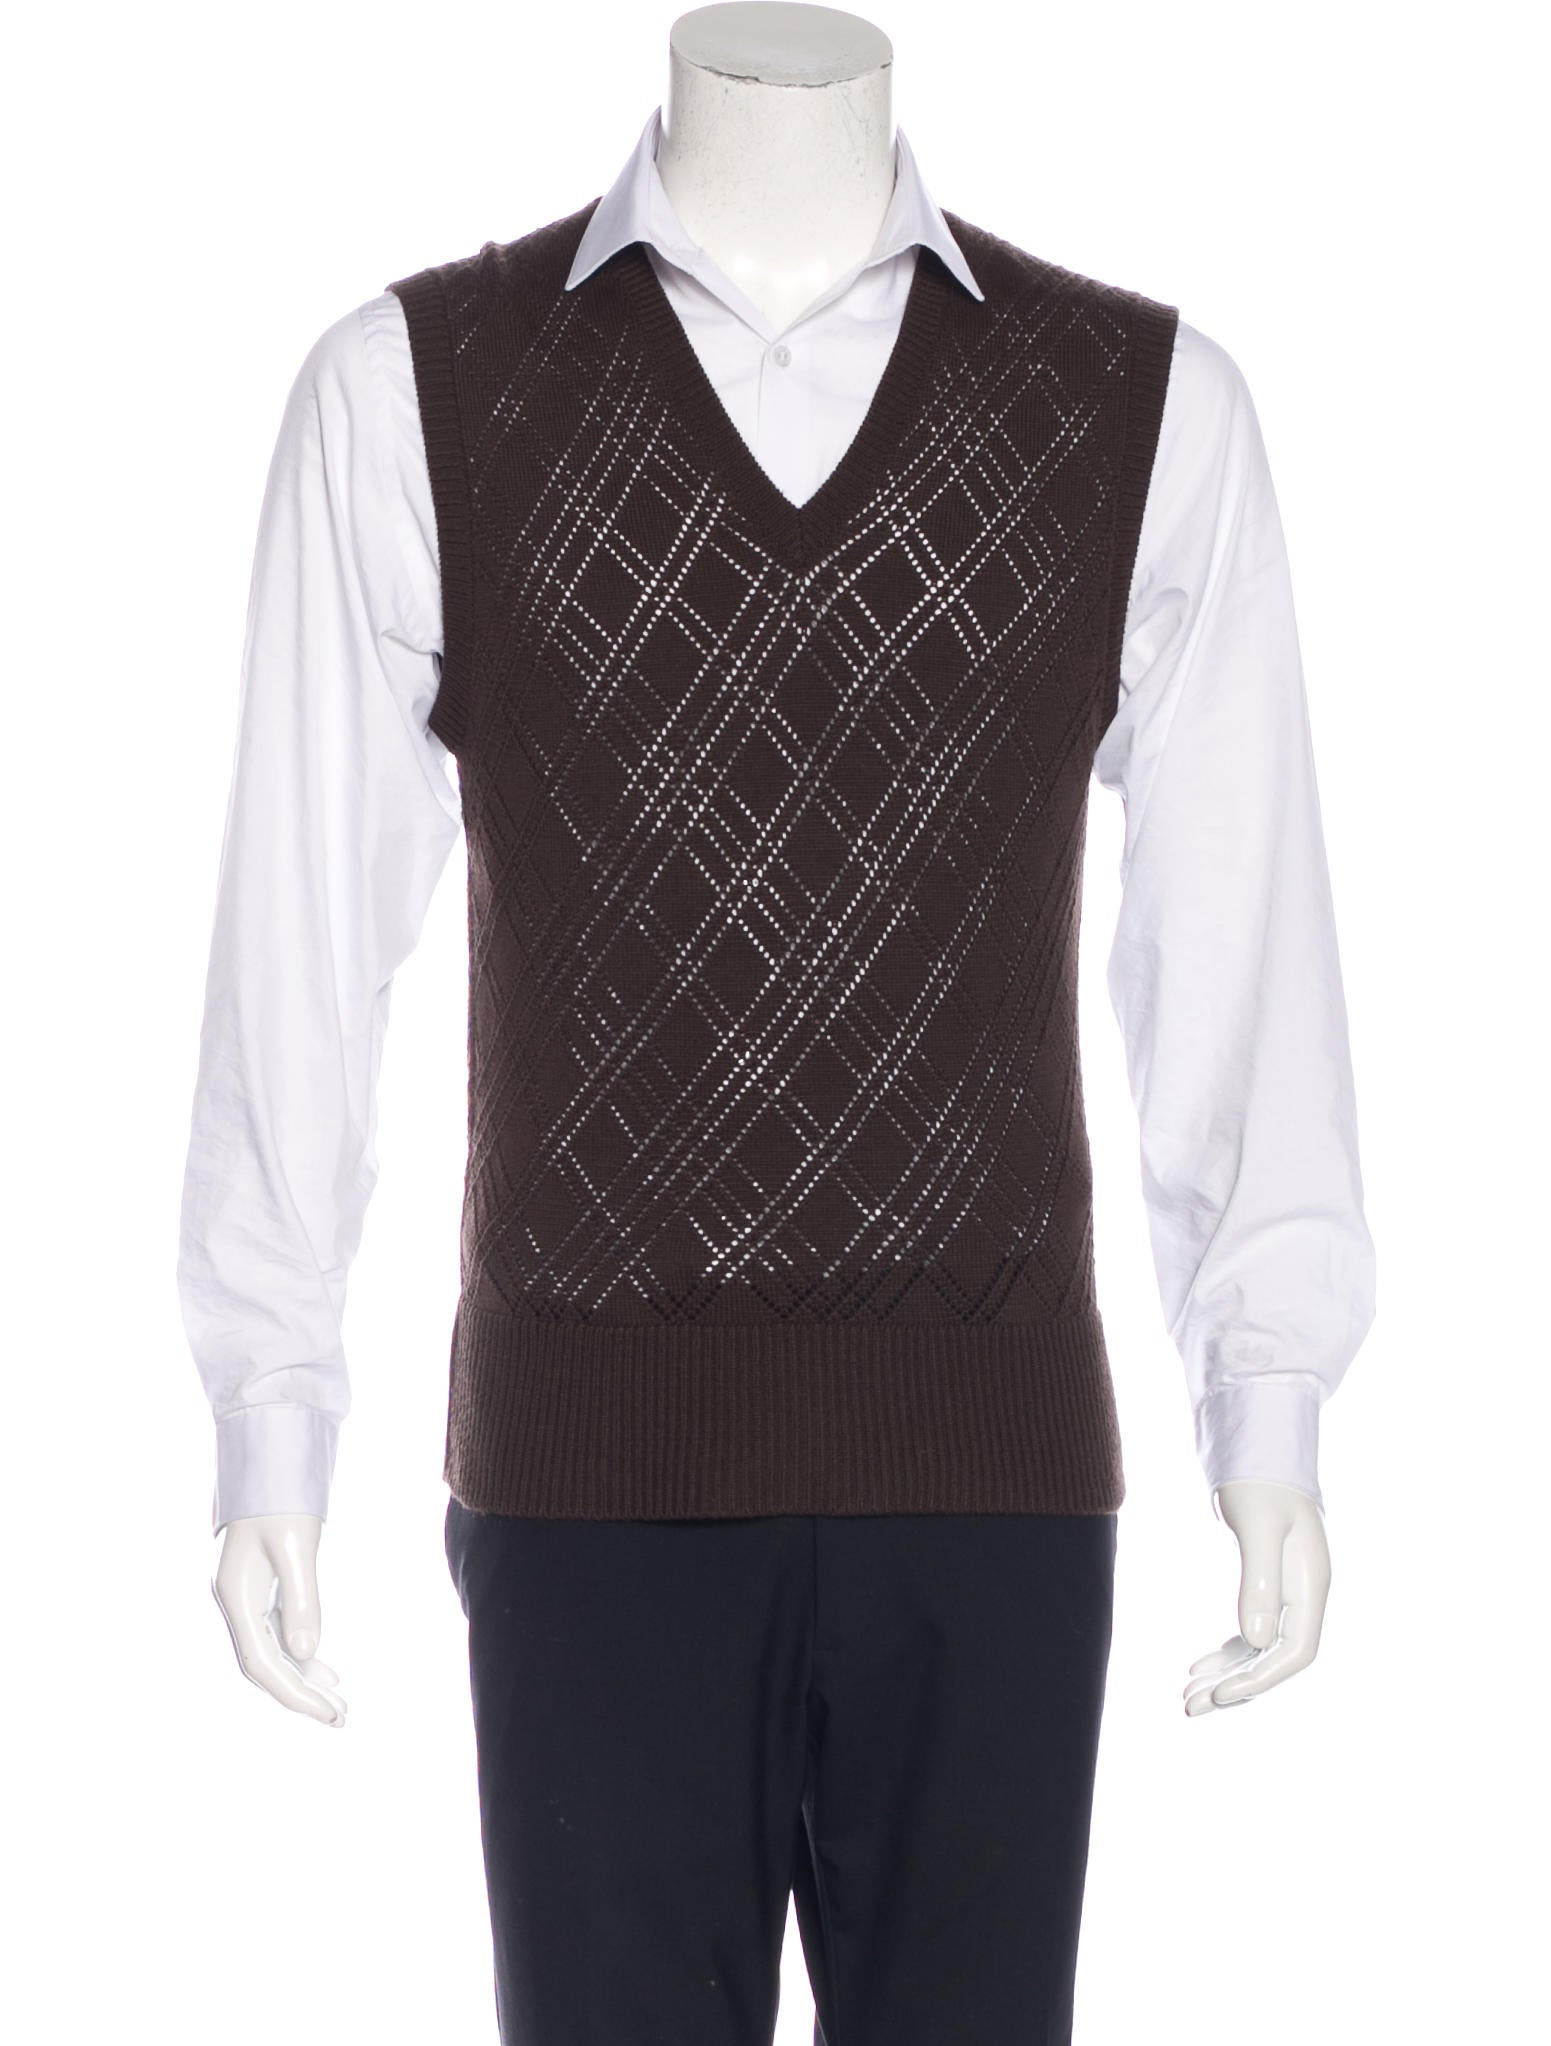 Neil Barrett V-Neck Sweater Vest - Clothing - NEB21244 | The RealReal